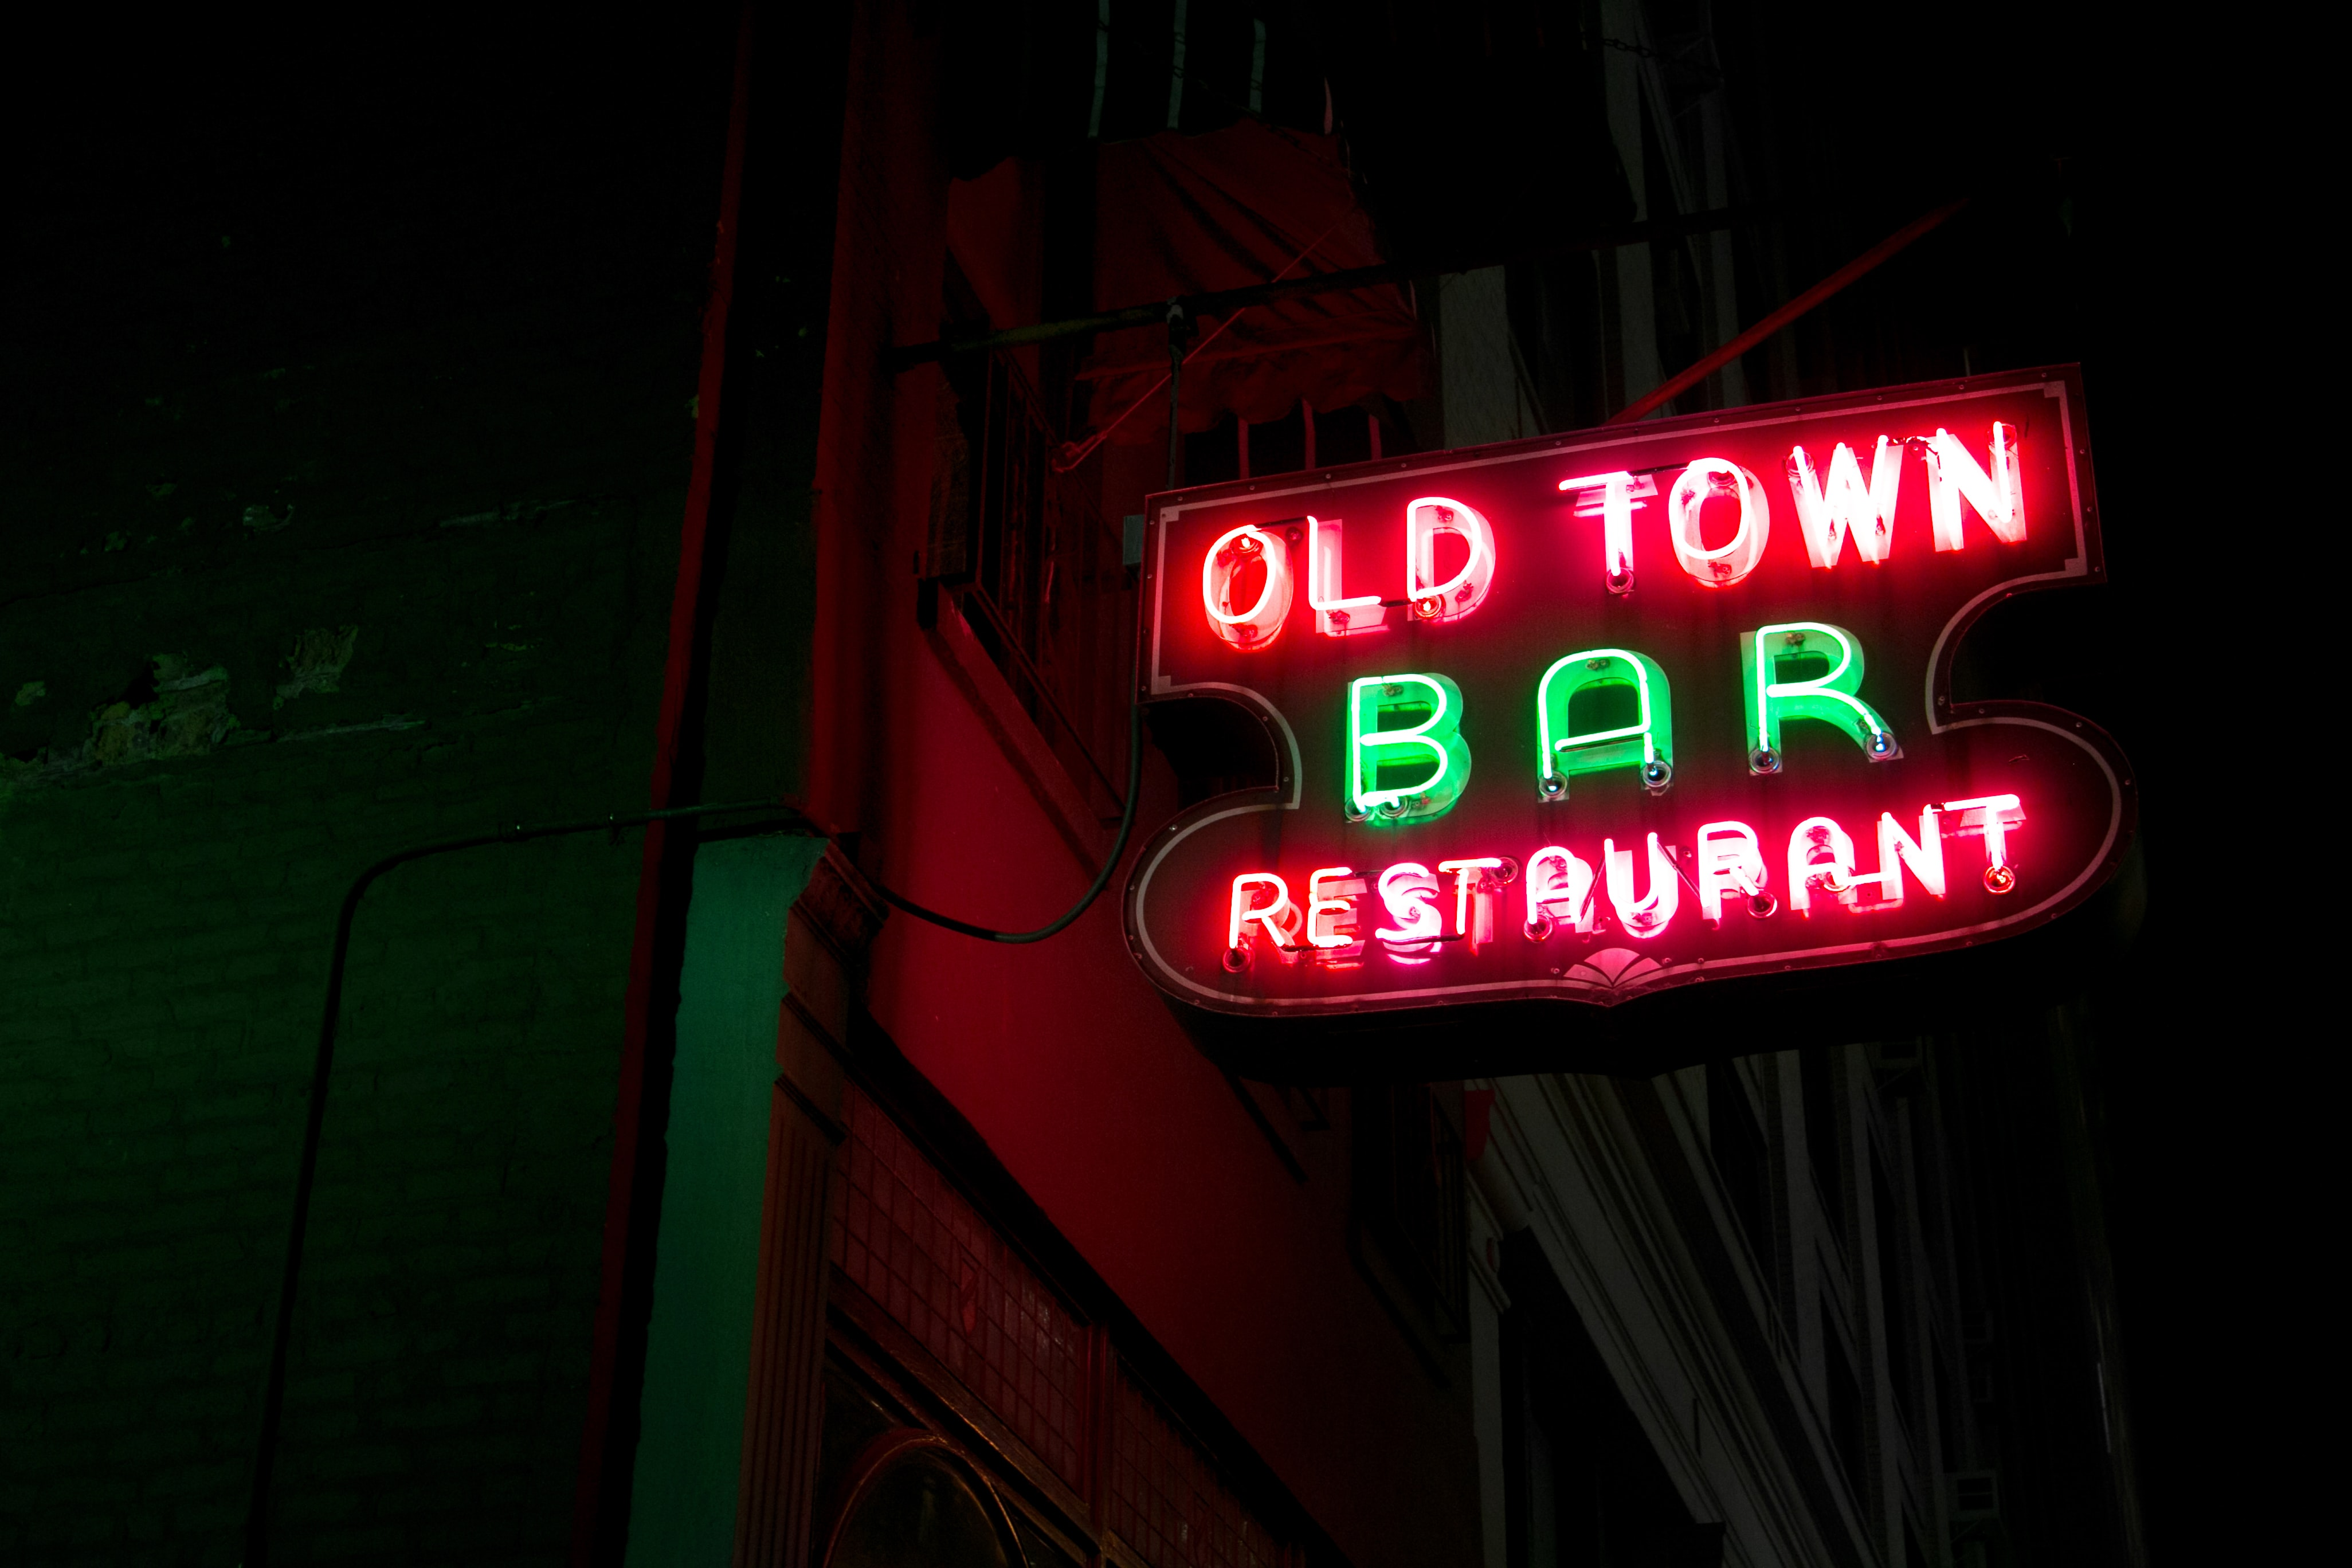 turned on Old Town Bar restaurant neon light signage